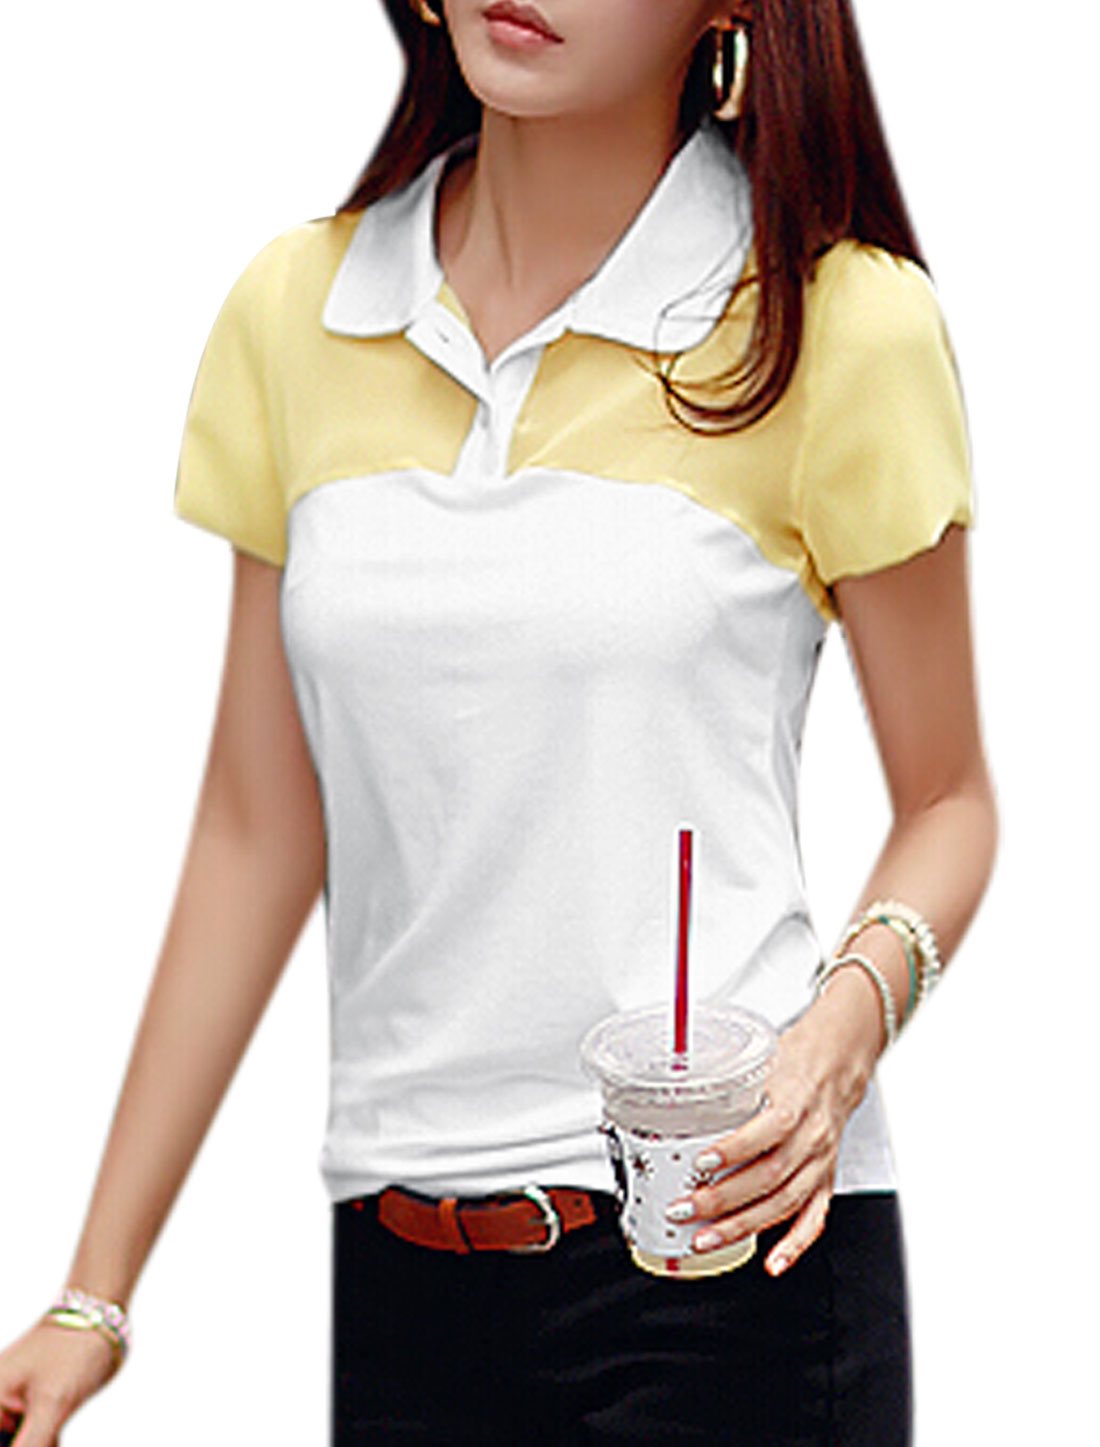 Women Short Sleeves Panel Design Casual Tops Yellow White M